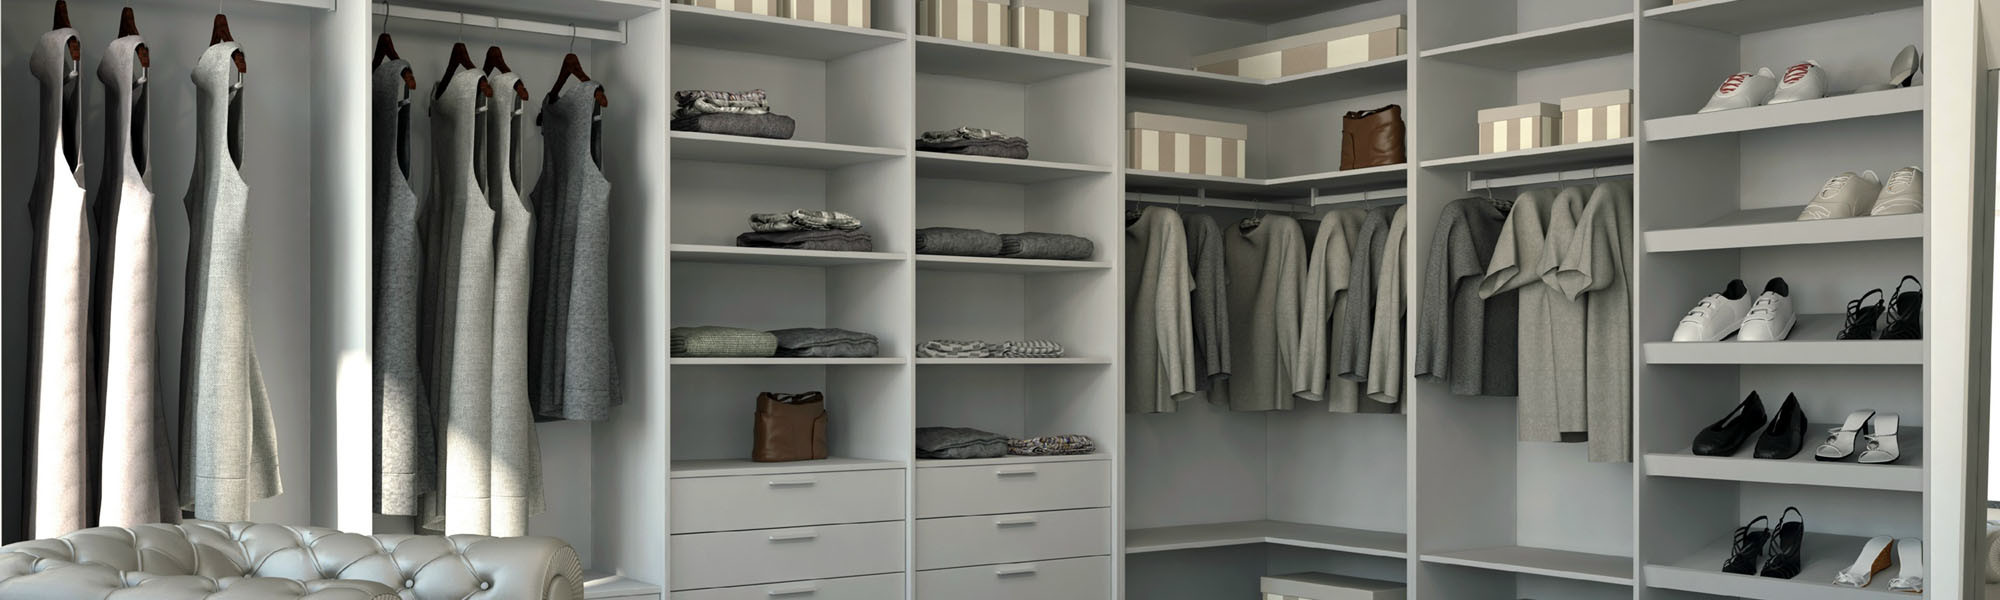 wardrobe-in-Lagos-Abuja-Port-harcourt-Nigeria-Hitech-Design-Furniture-Limited